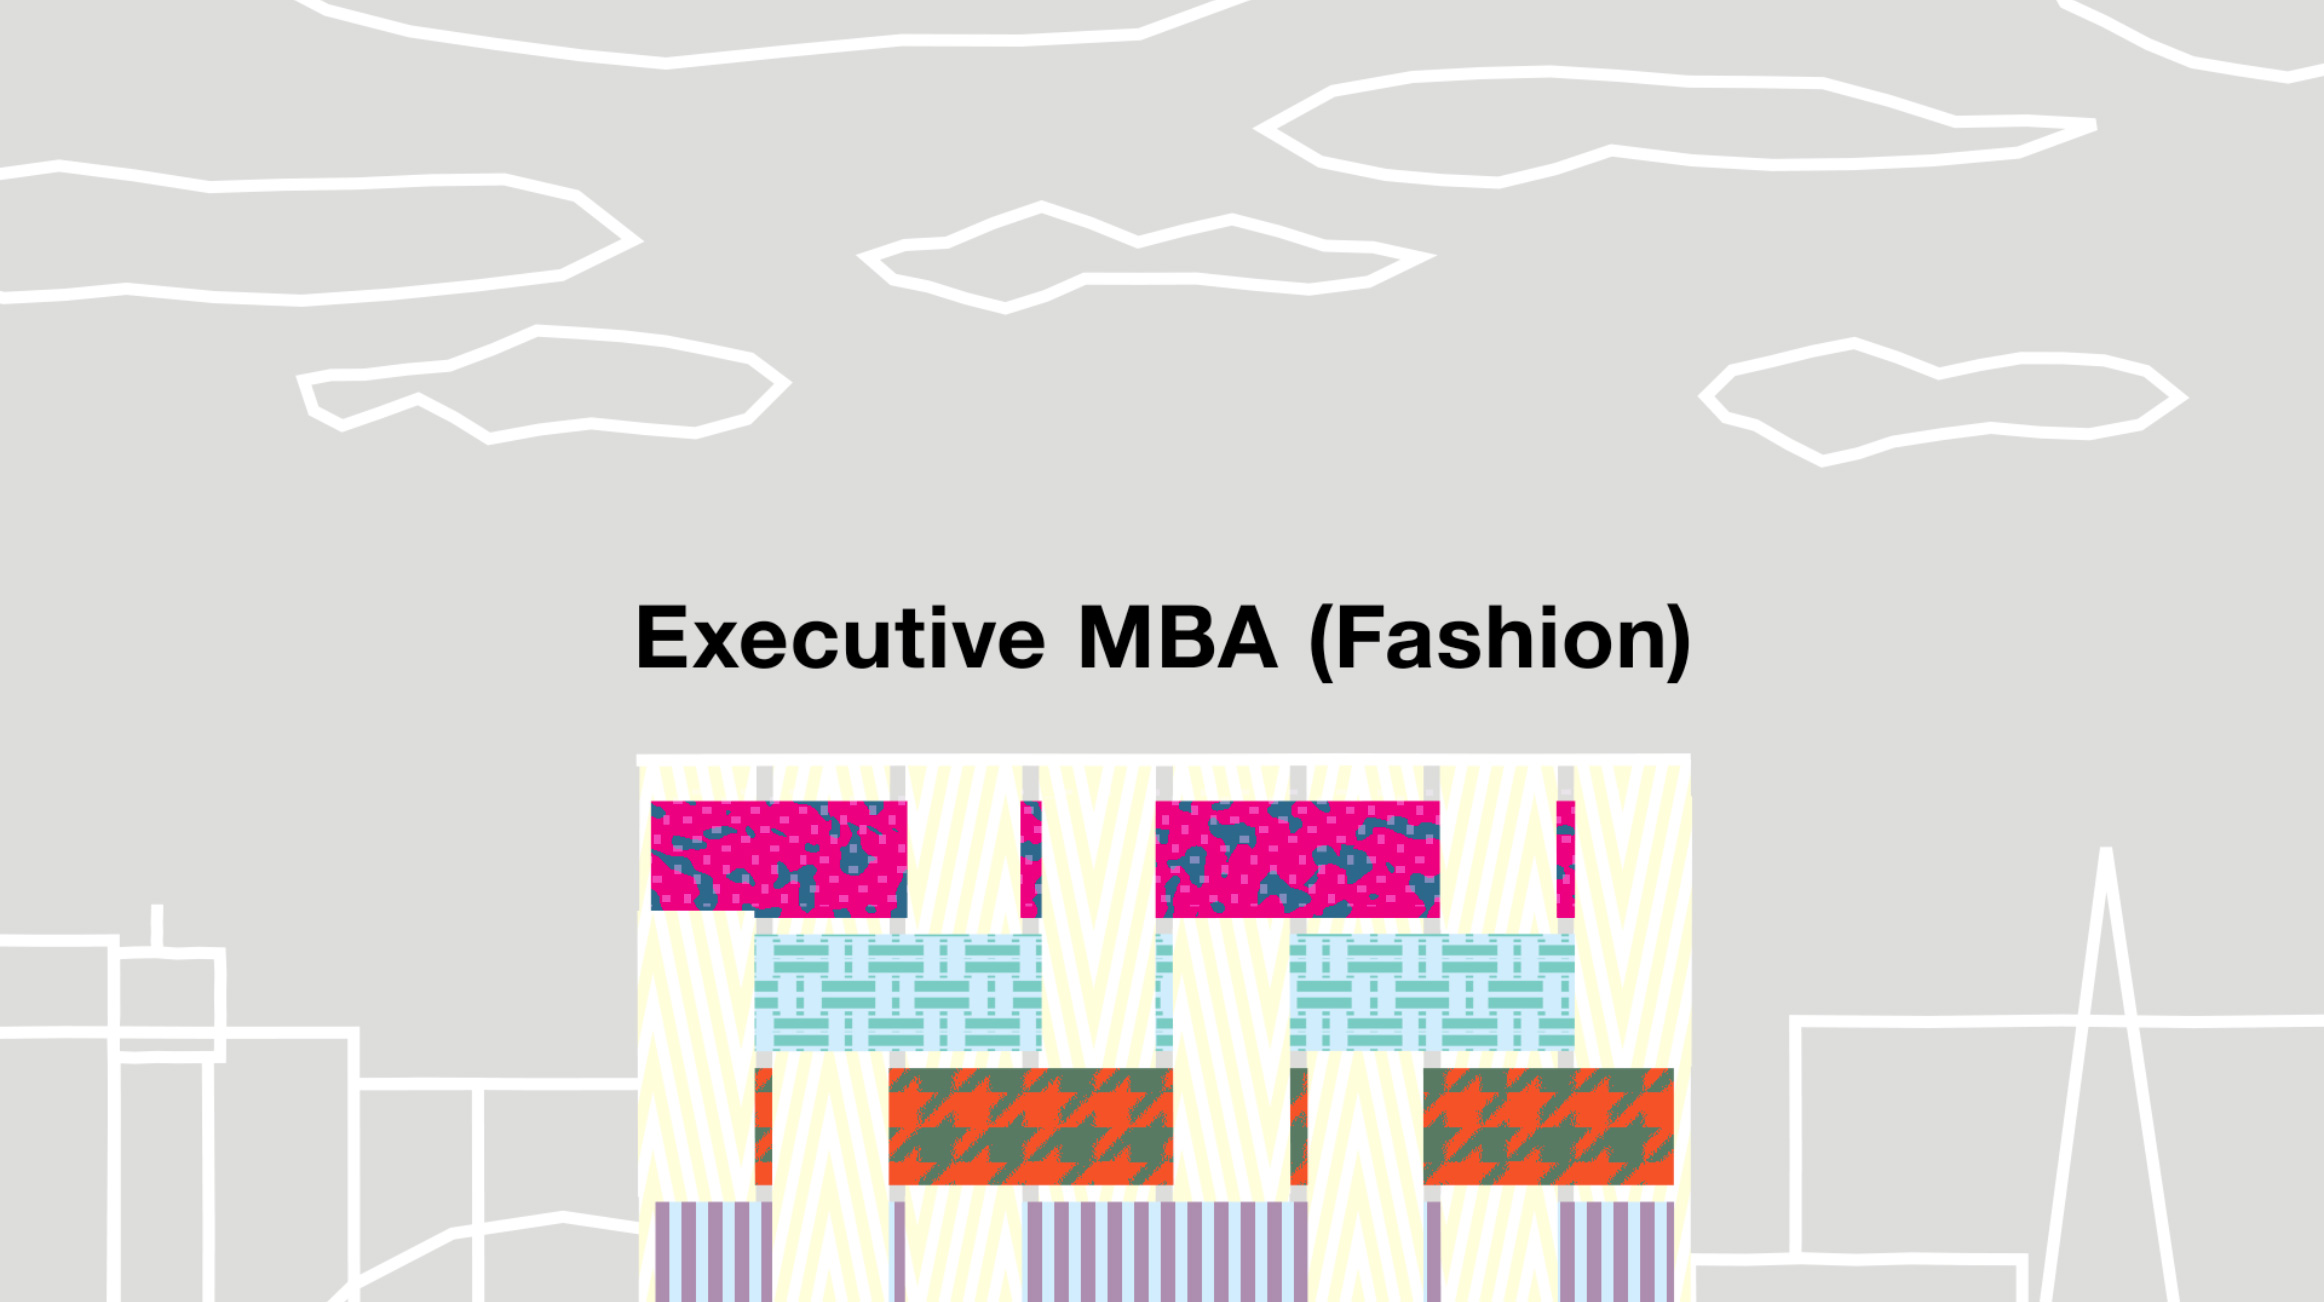 Importance of Management Why study management Mangement Scope of mba in fashion management